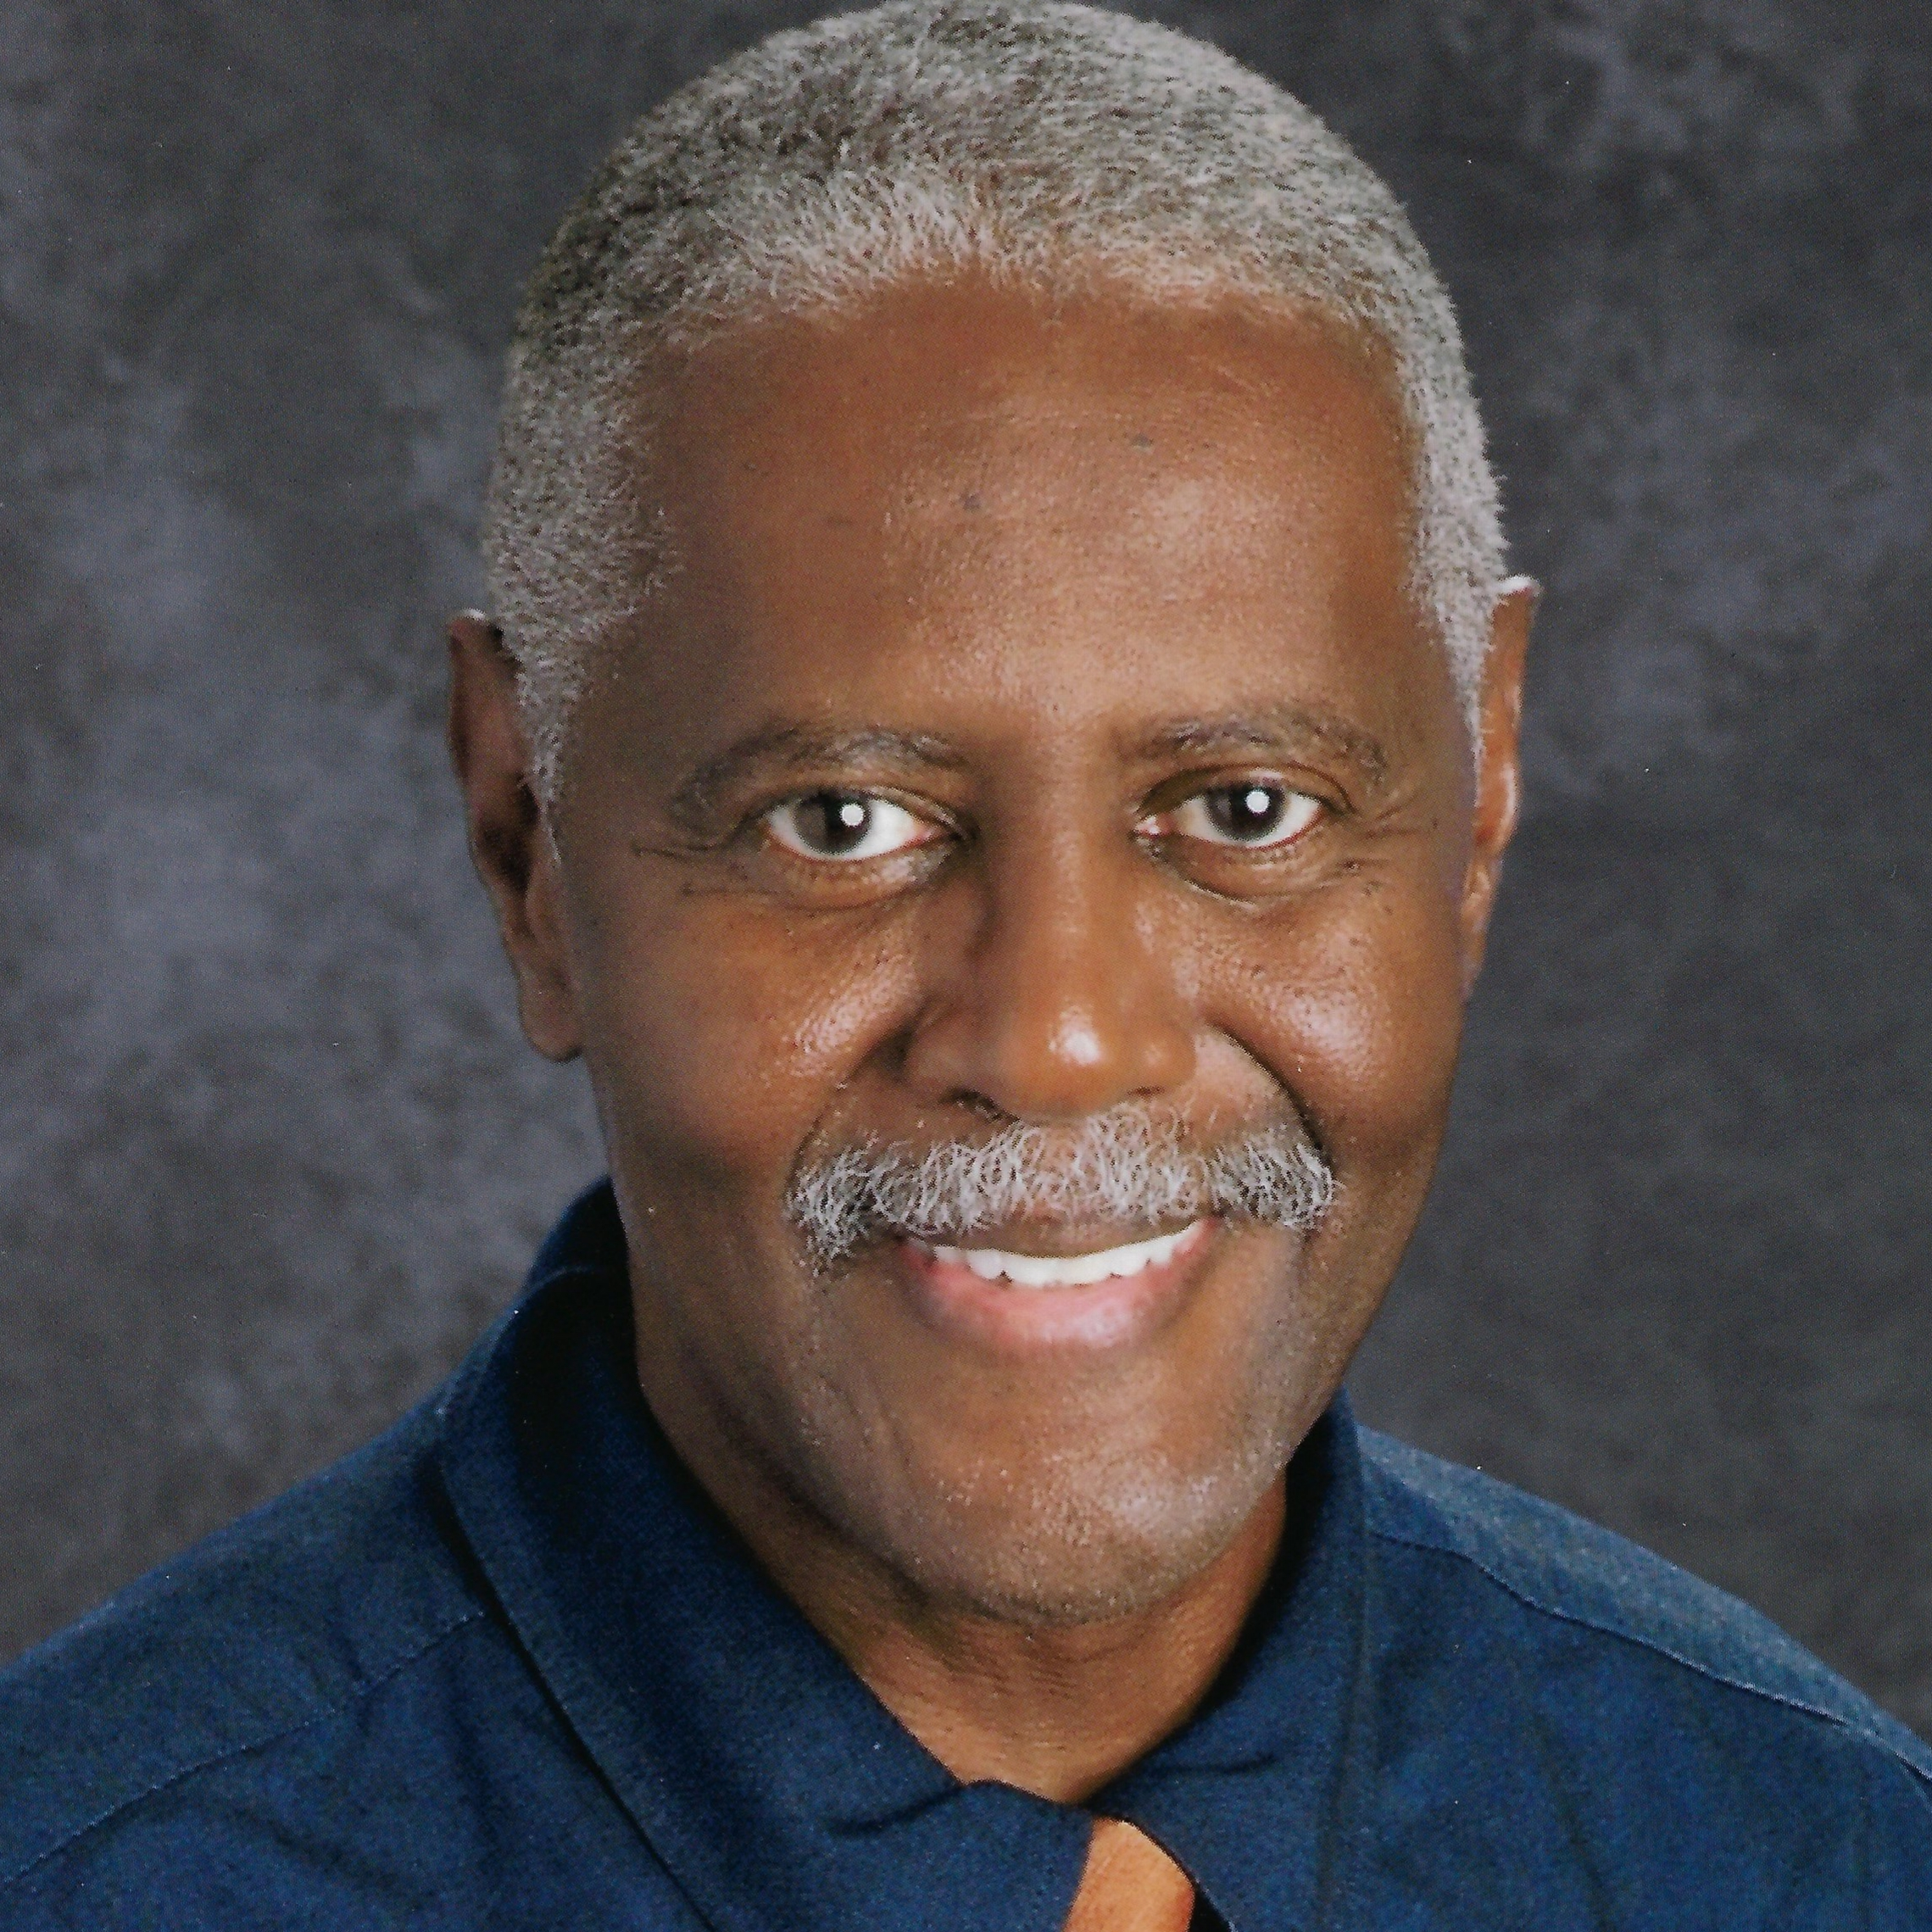 """HOWARD SANDIFER   Executive Director Chicago West Community Music Center (CWCMC)   """"Young, aspiring artists can't help but learn and benefit from consulting with consummate professionals such as those that have been assembled at The Dream Counsel. I've had the pleasure of watching Darryl Duncan interact, advise, mentor and instruct young people interested in seeking careers in the music industry. This team's level of passion and commitment is going to make a major impact on the entertainment business! Congratulations to The Dream Counsel for launching this new and exciting venture."""""""